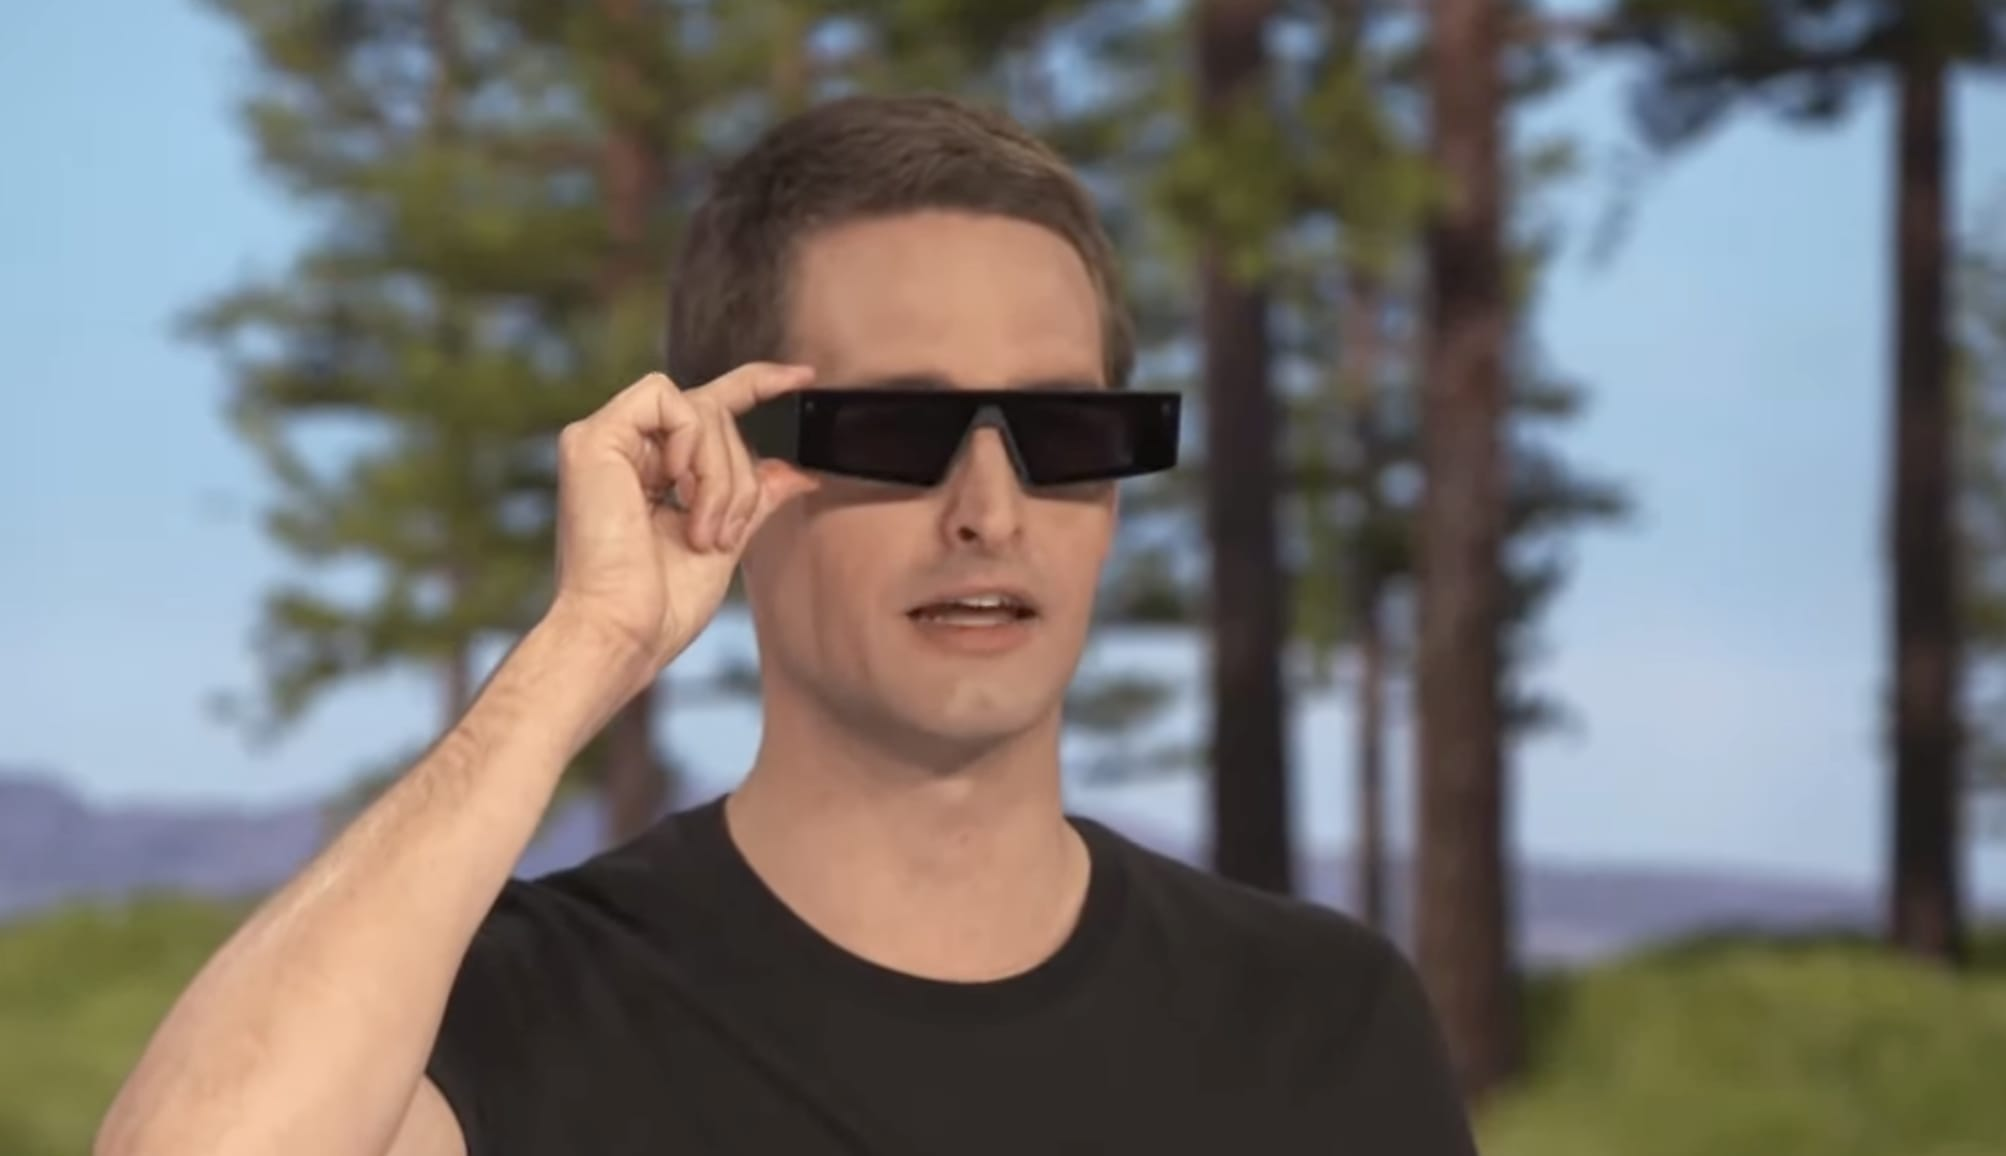 Snap buys WaveOptics a company that makes parts for augmented reality glasses in $500 million deal – CNBC